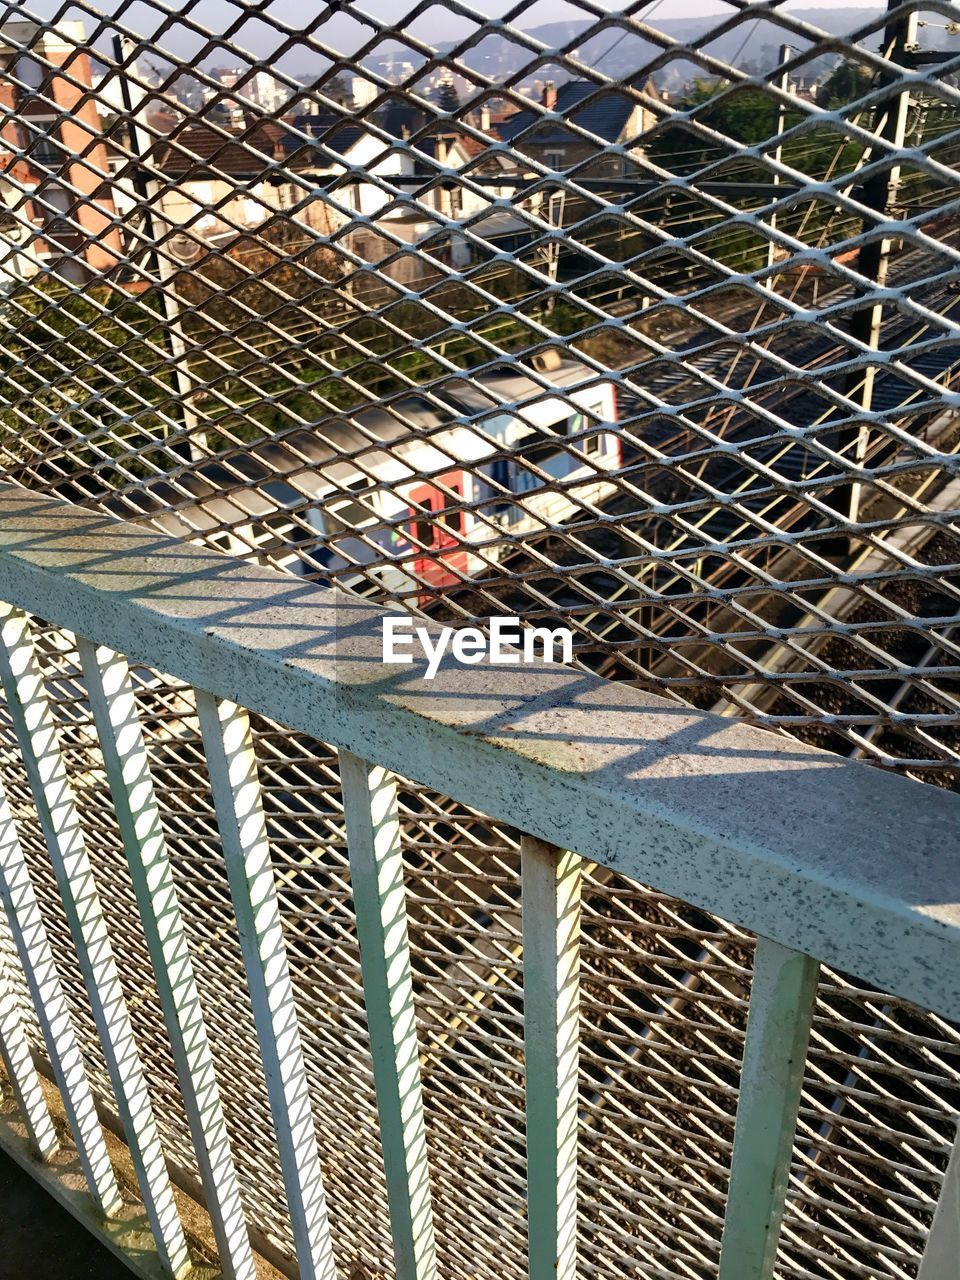 fence, barrier, boundary, metal, safety, day, protection, chainlink fence, security, sunlight, real people, transportation, one person, outdoors, construction industry, nature, built structure, men, road